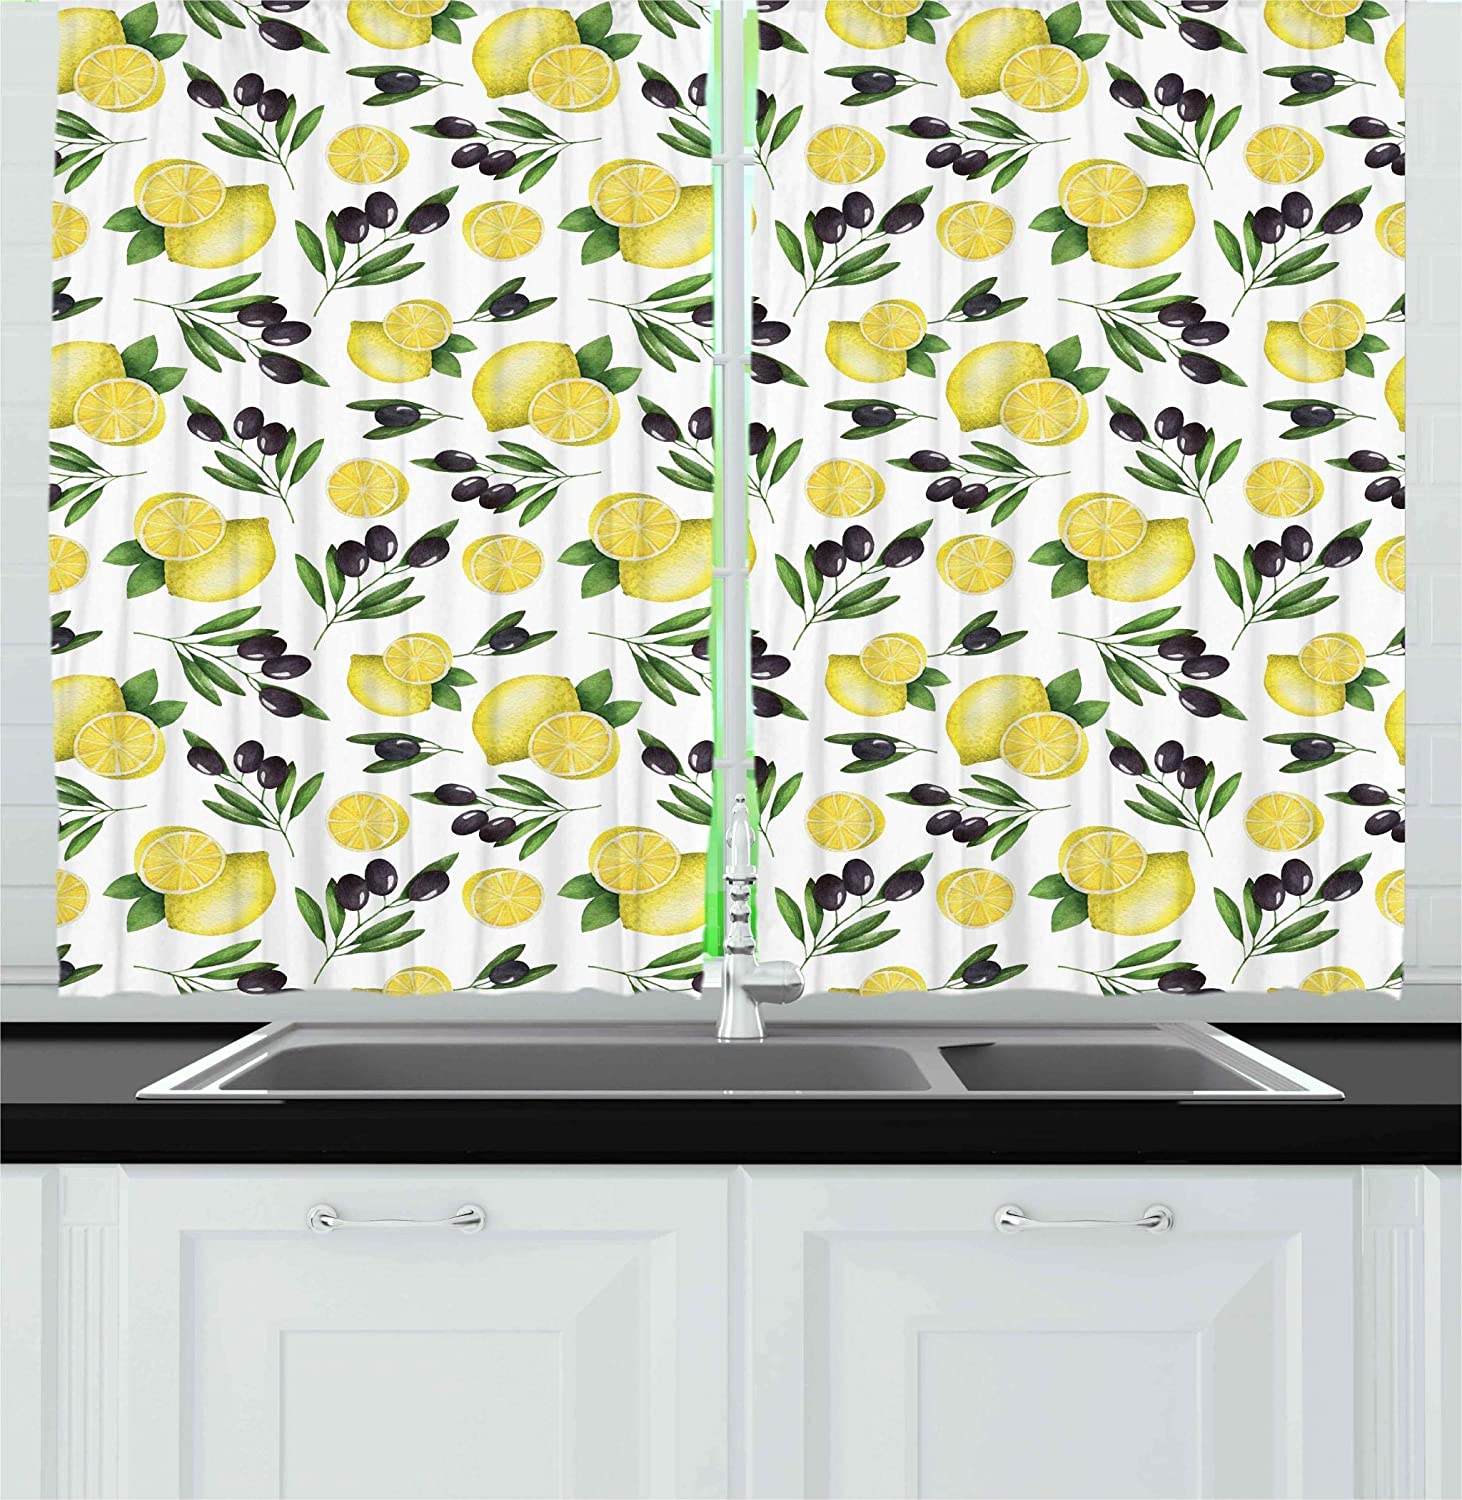 Kitchen Kitchen Curtains by Ambesonne, Watercolors Painted Pattern of Olives and Lemons Healthy Mediterranean Food, Window Drapes 2 Panels Set for Kitchen Cafe, 55W X 39L Inches, Yellow Black Green